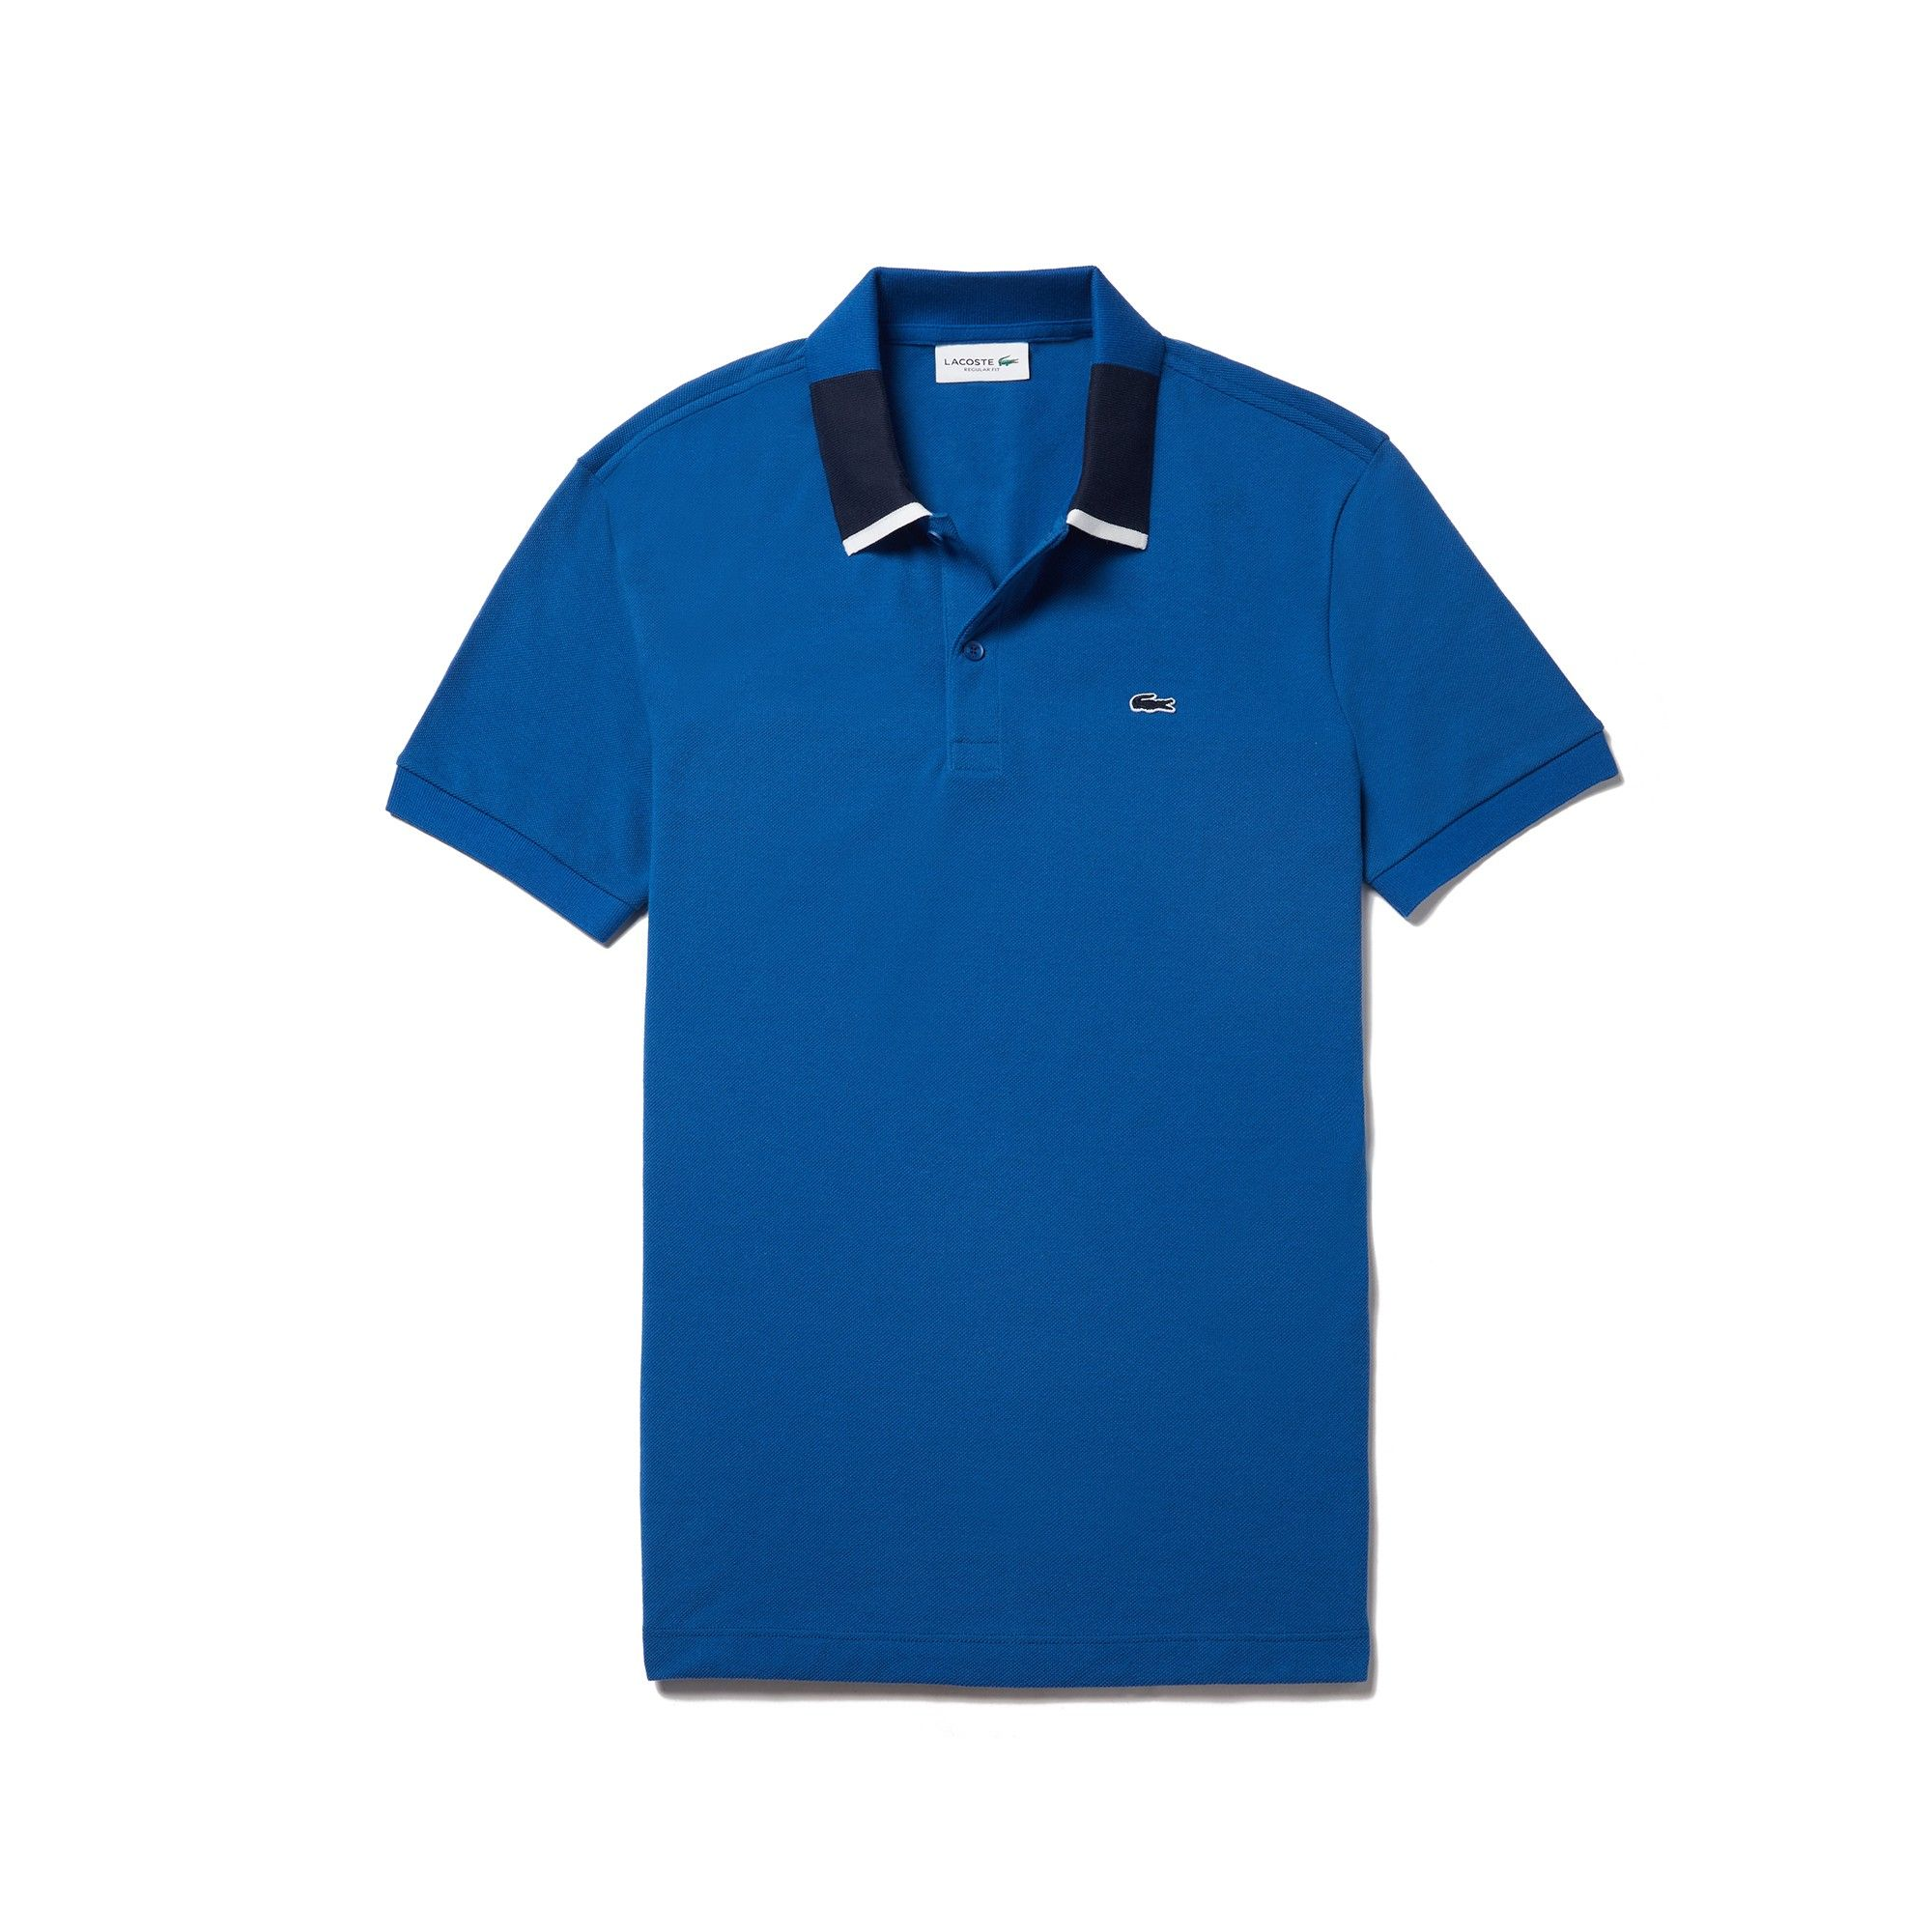 a6880011dfb8 Lacoste Men s Regular Fit Contrast Piqué Polo - Electric Blue Navy Blue-W  3Xl